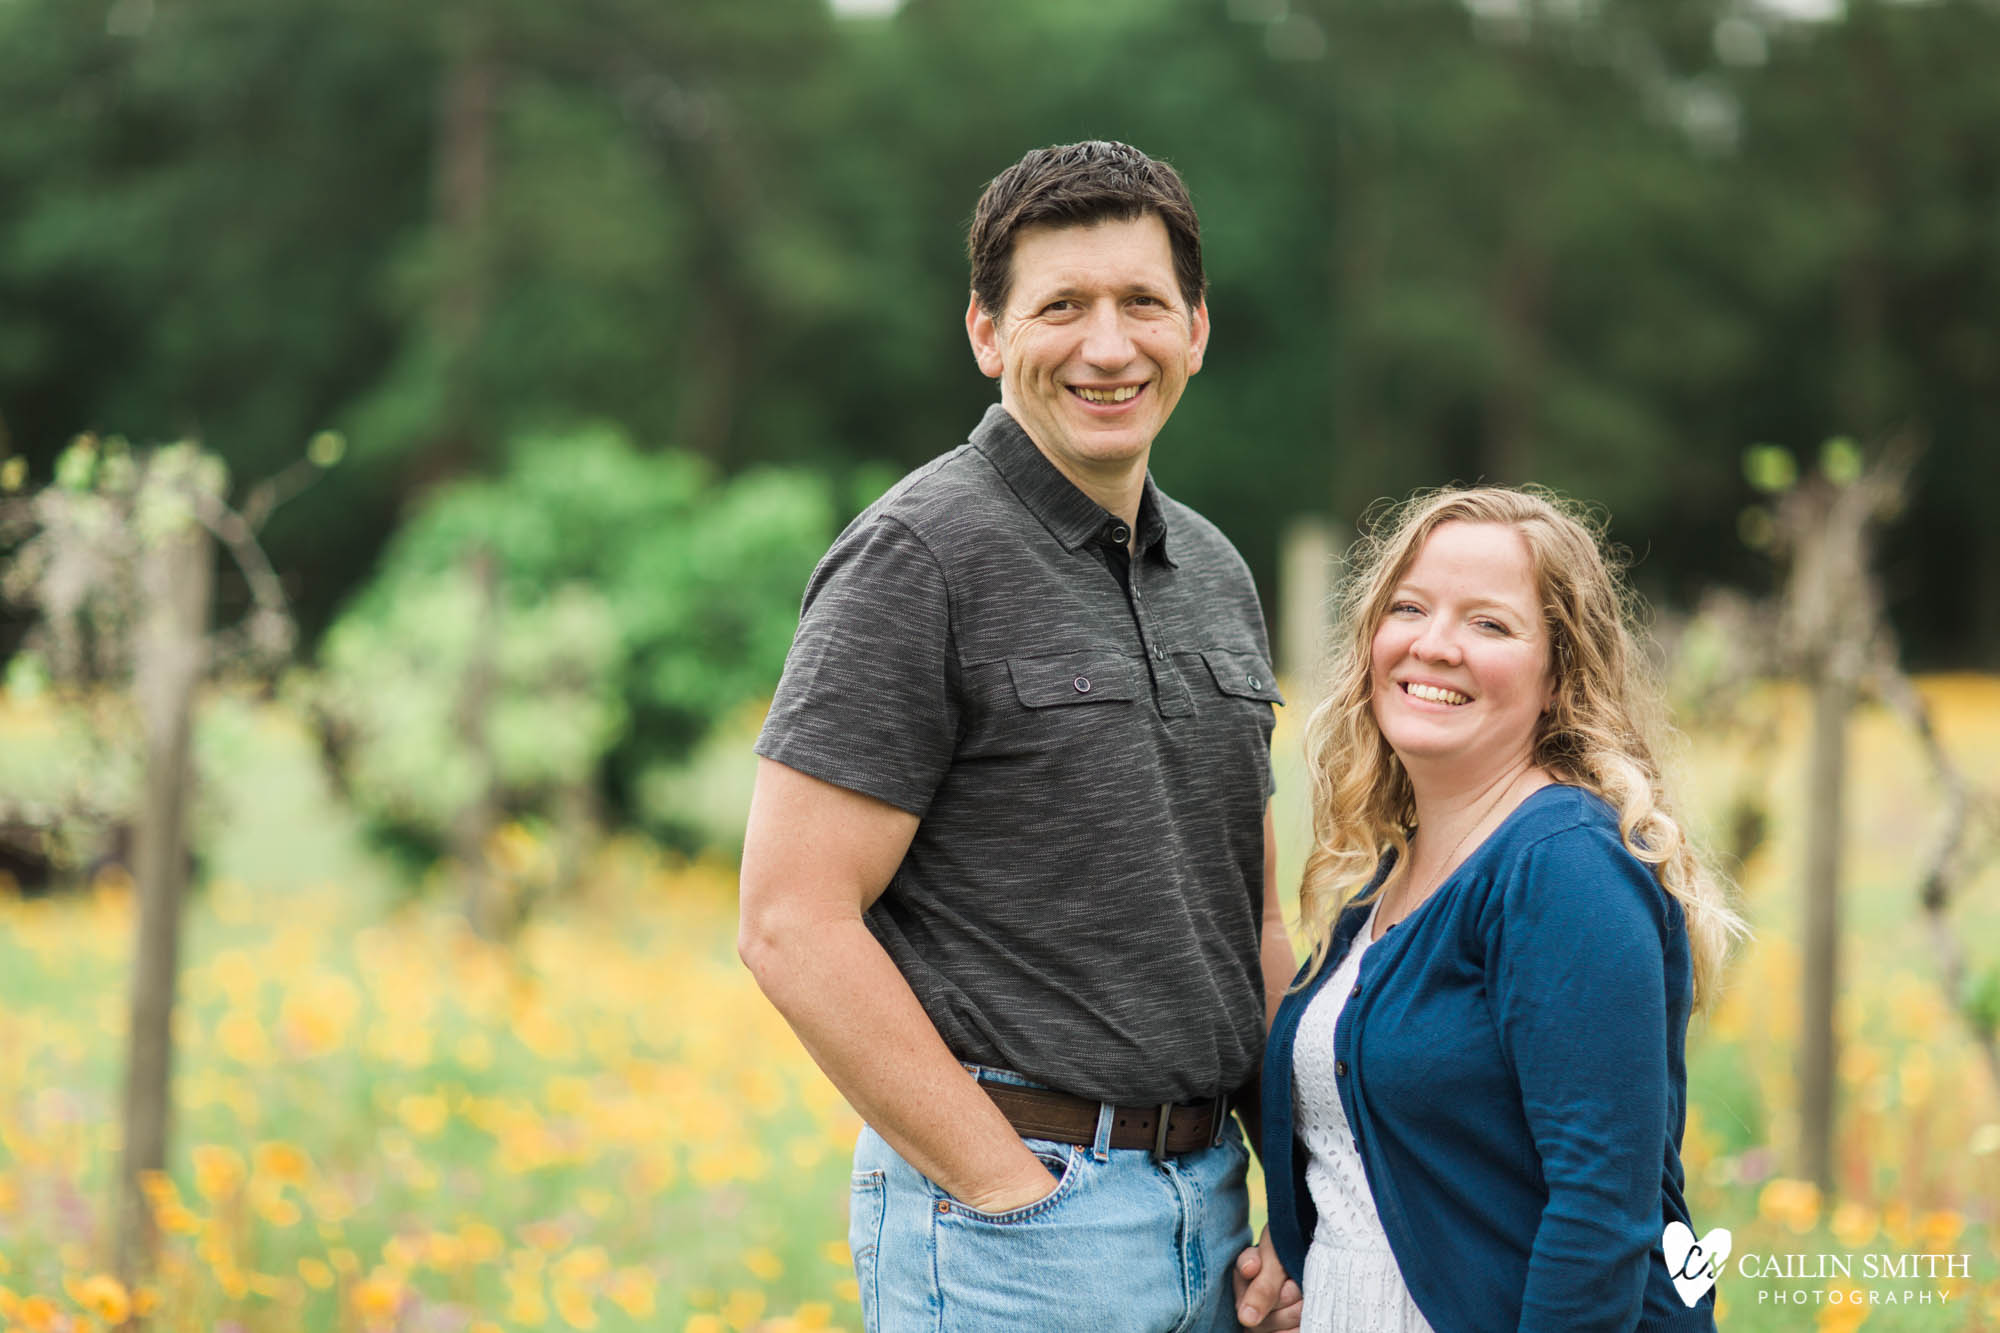 Christie_Nathan_Flower_Field_engagement_Photography_009.jpg